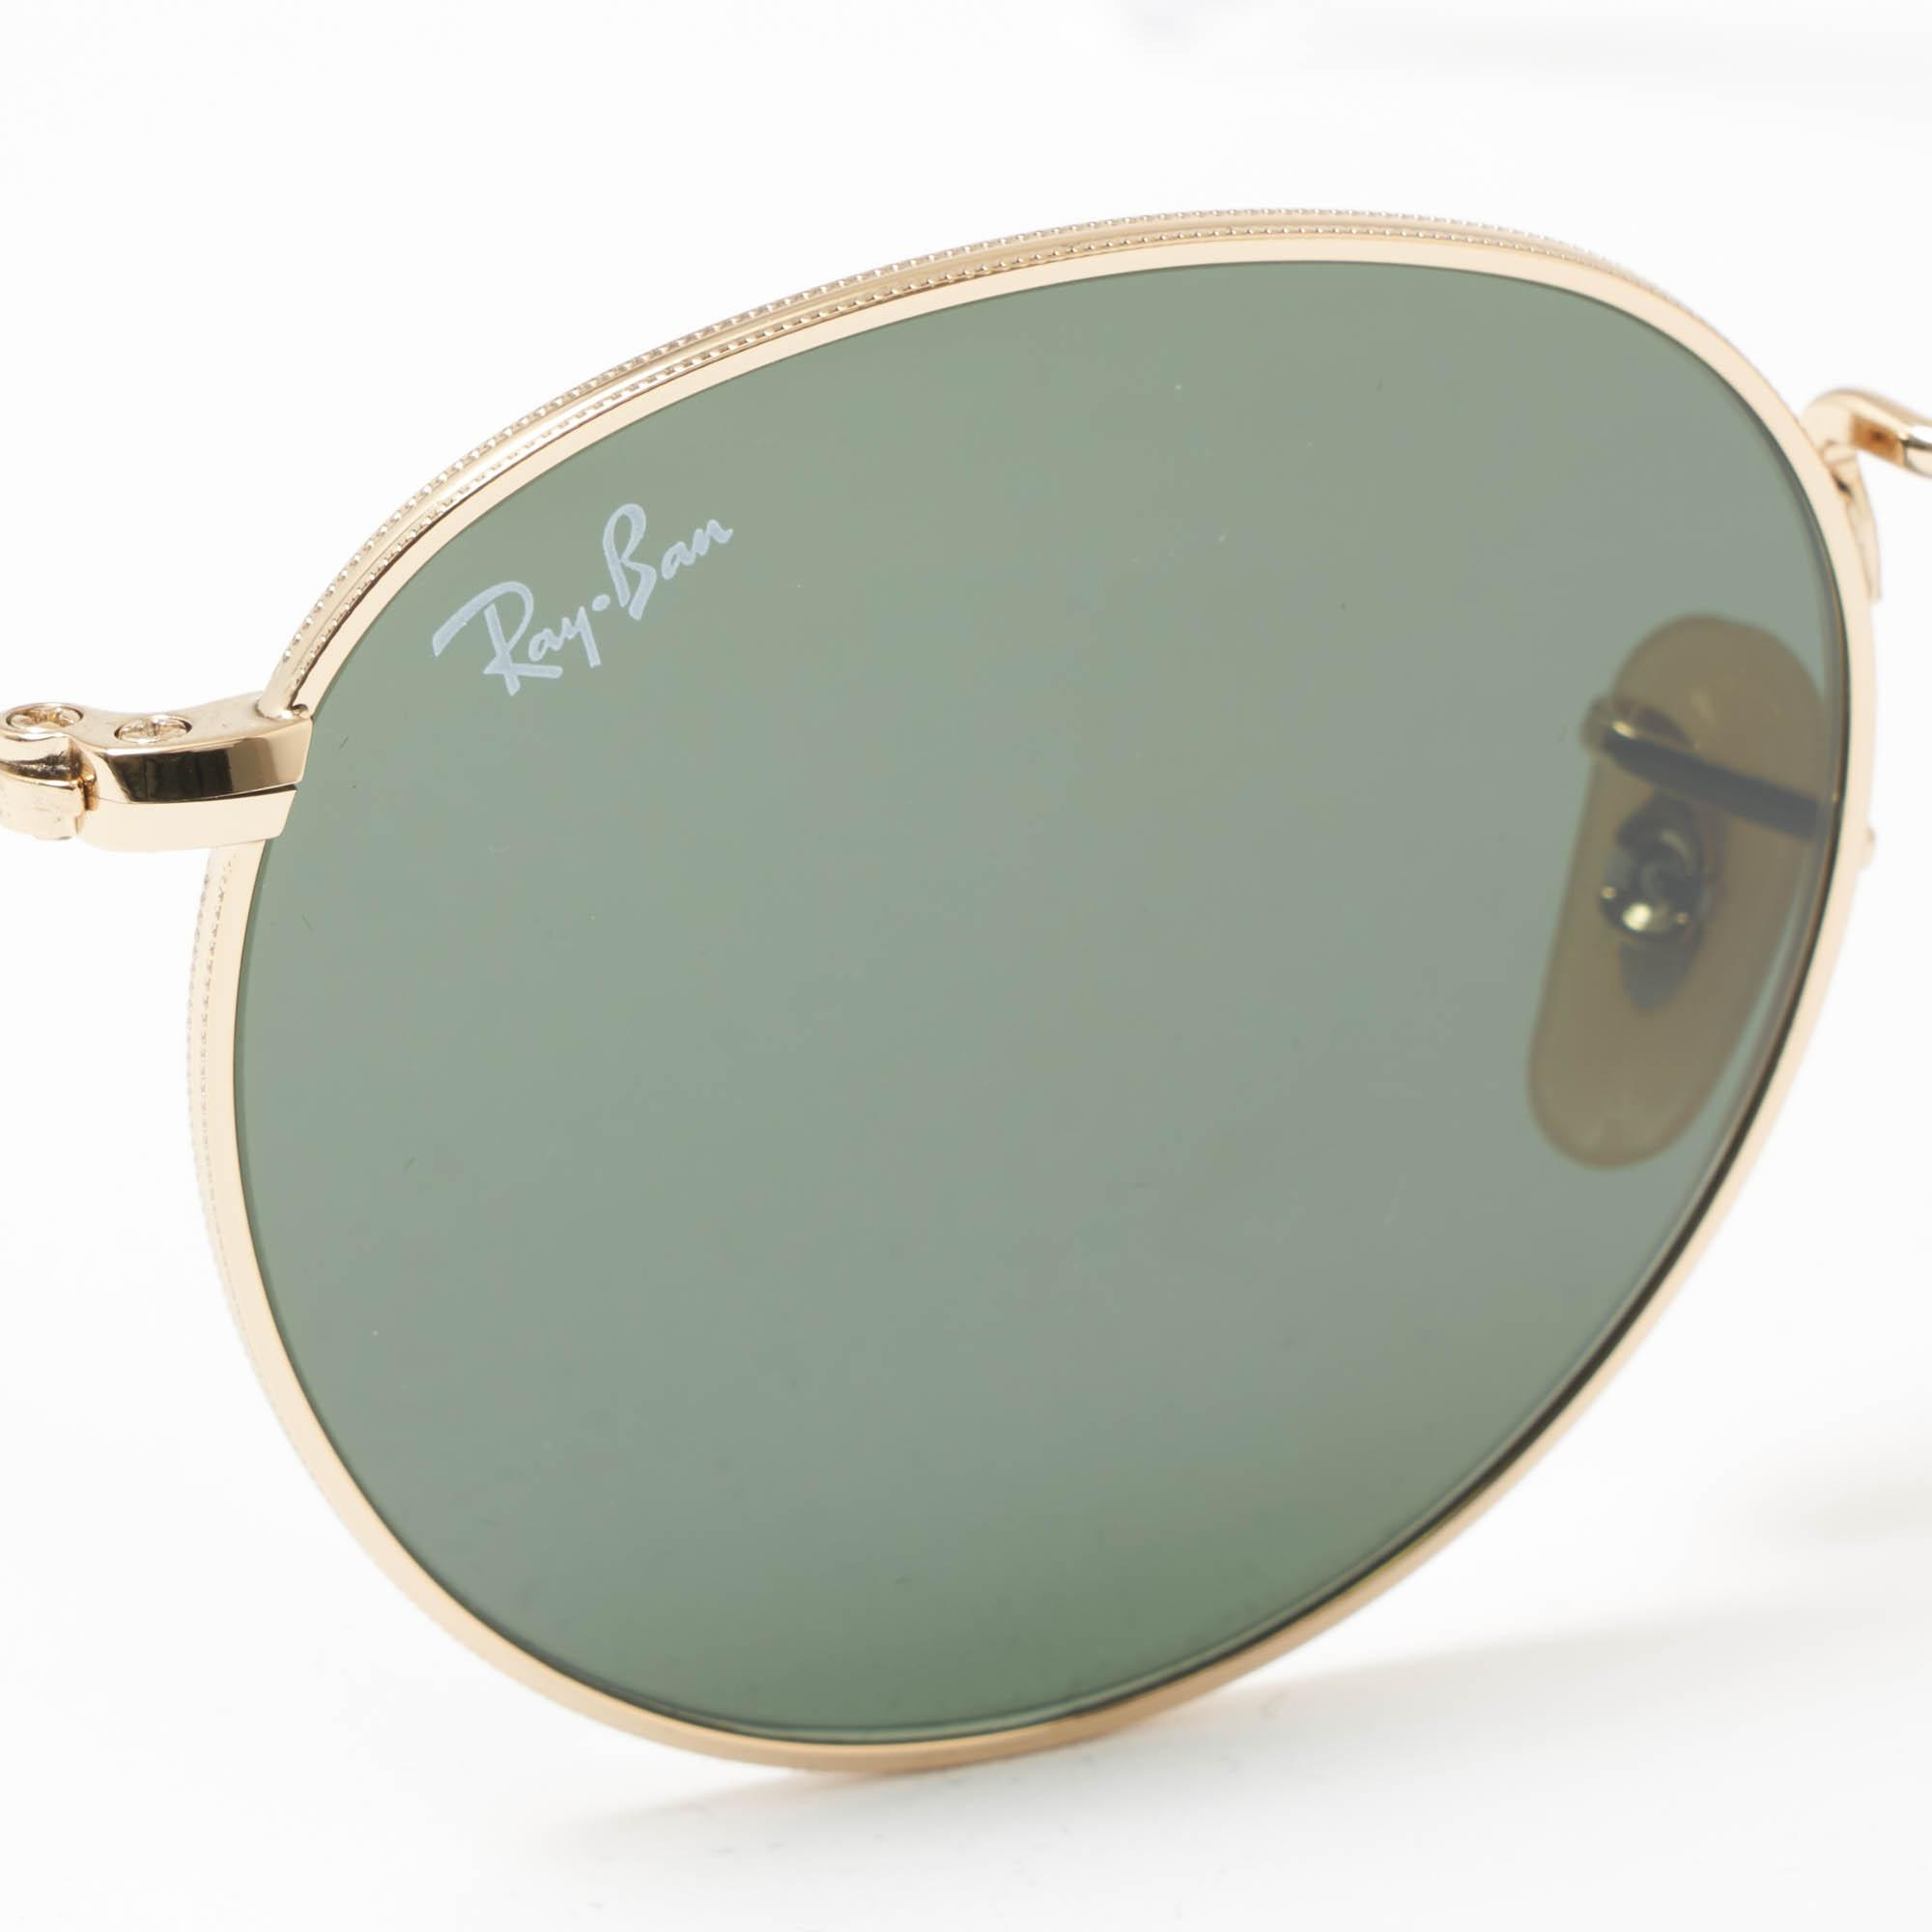 a807588c2d Ray-Ban - Metallic Gold Round Metal Sunglasses - Green Classic G-15 Lenses.  View fullscreen